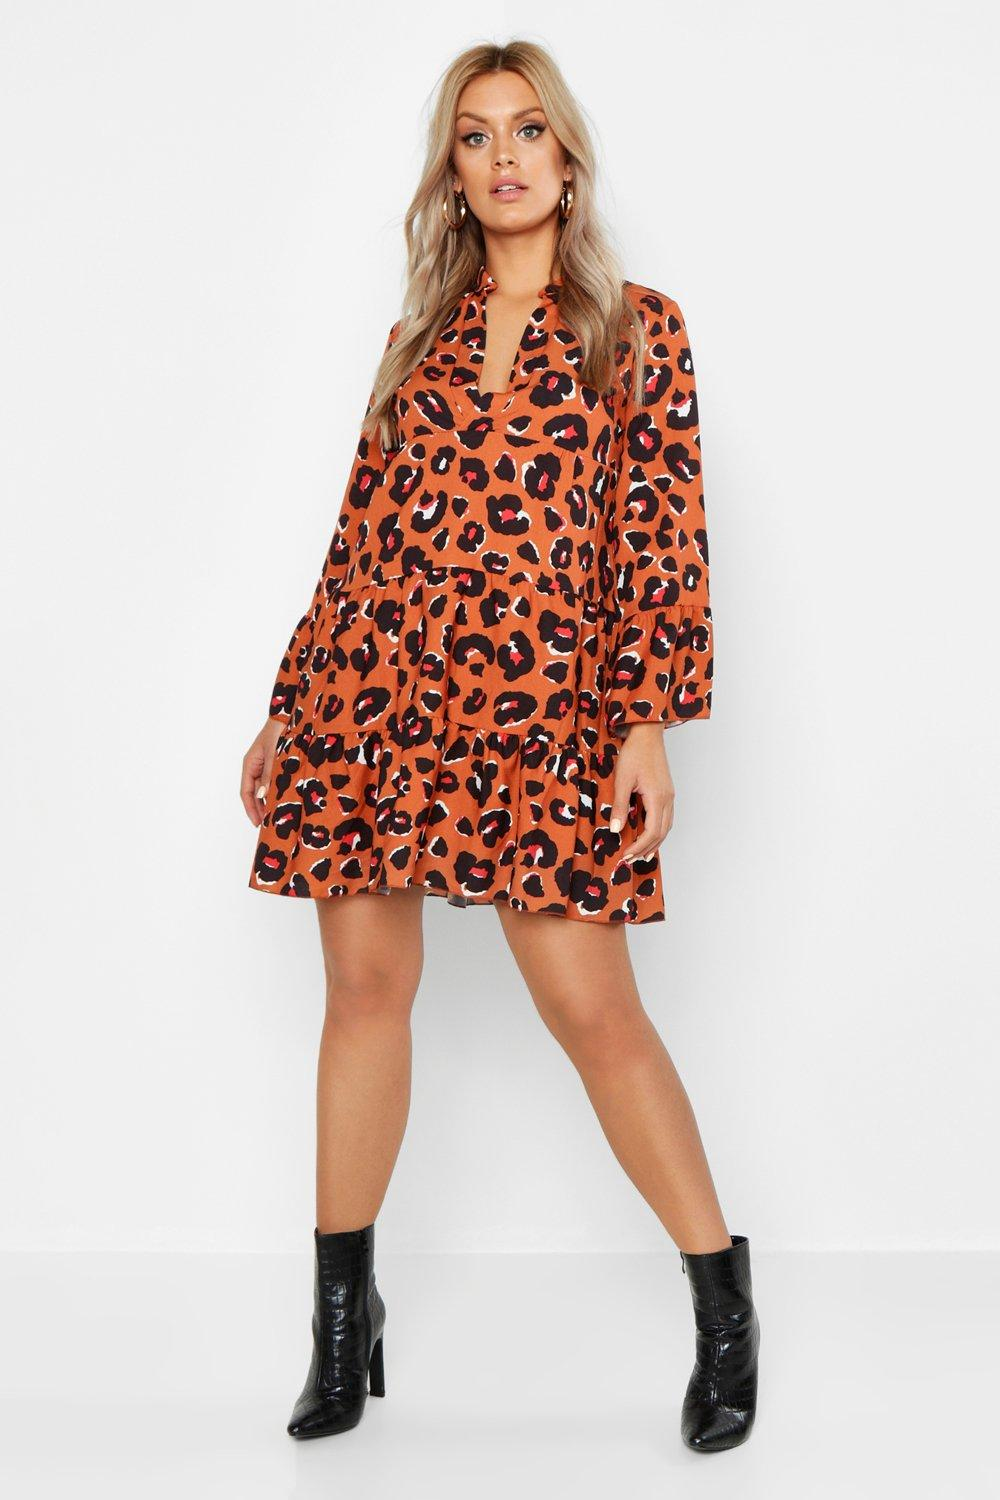 Leopard Smock Dress - Sizes 12 - 20